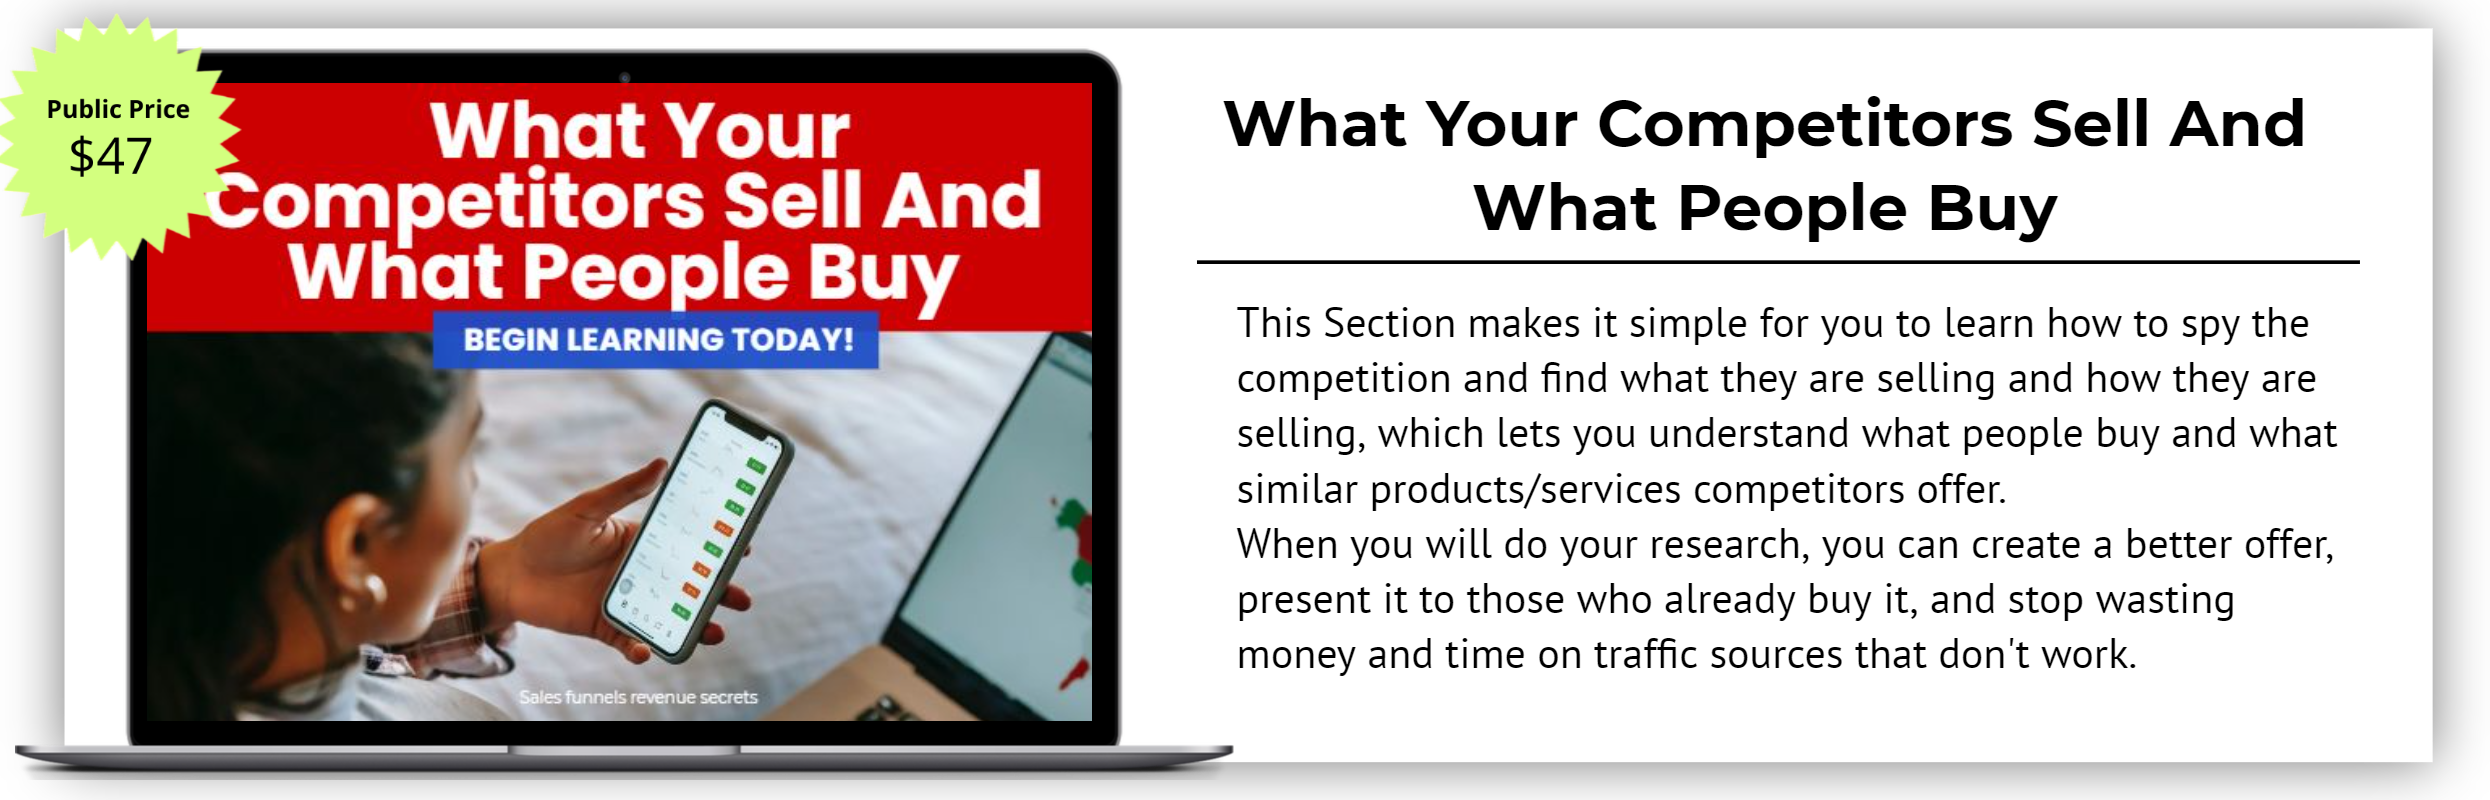 What Your Competitors Sell And What People Buy